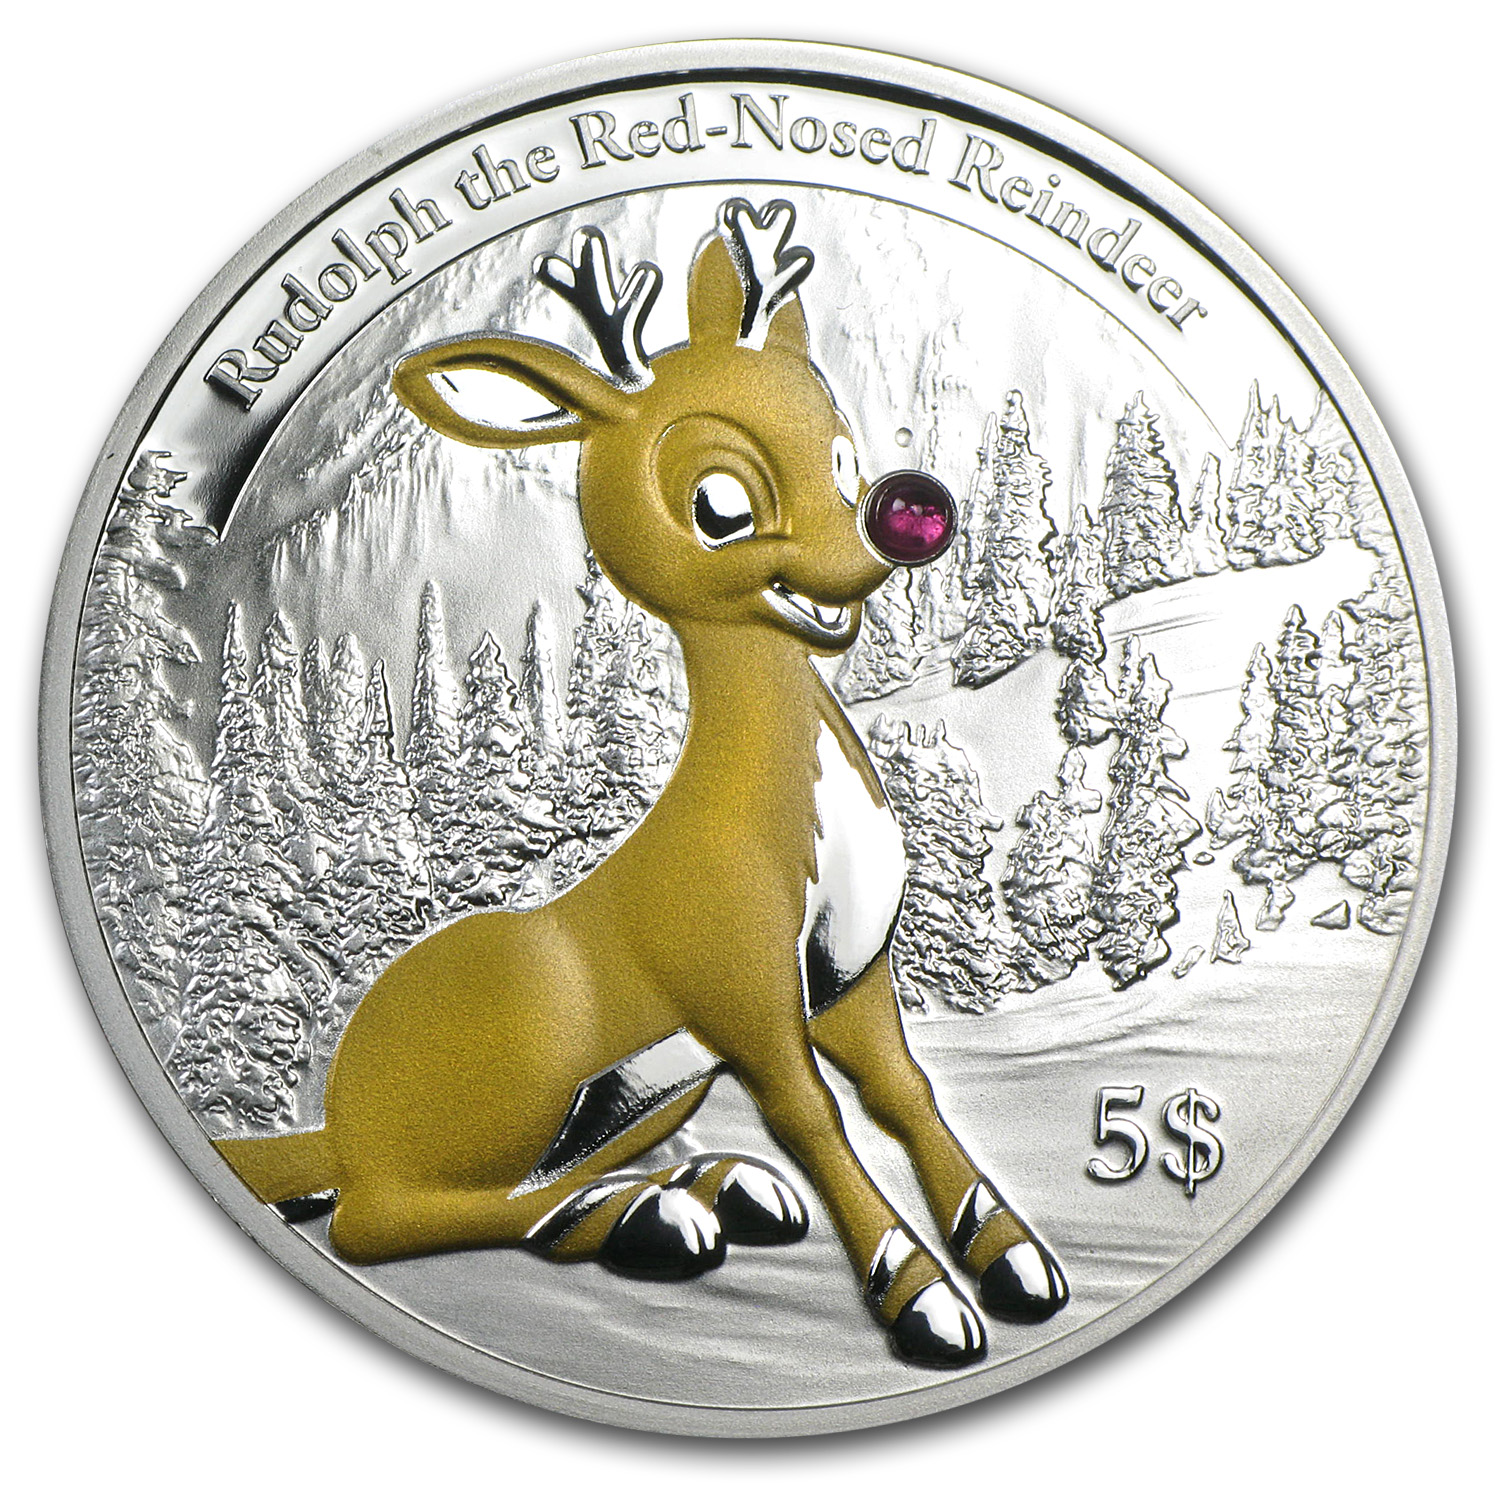 2013 Republic of Kiribati Rudolph the Red-Nosed Reindeer